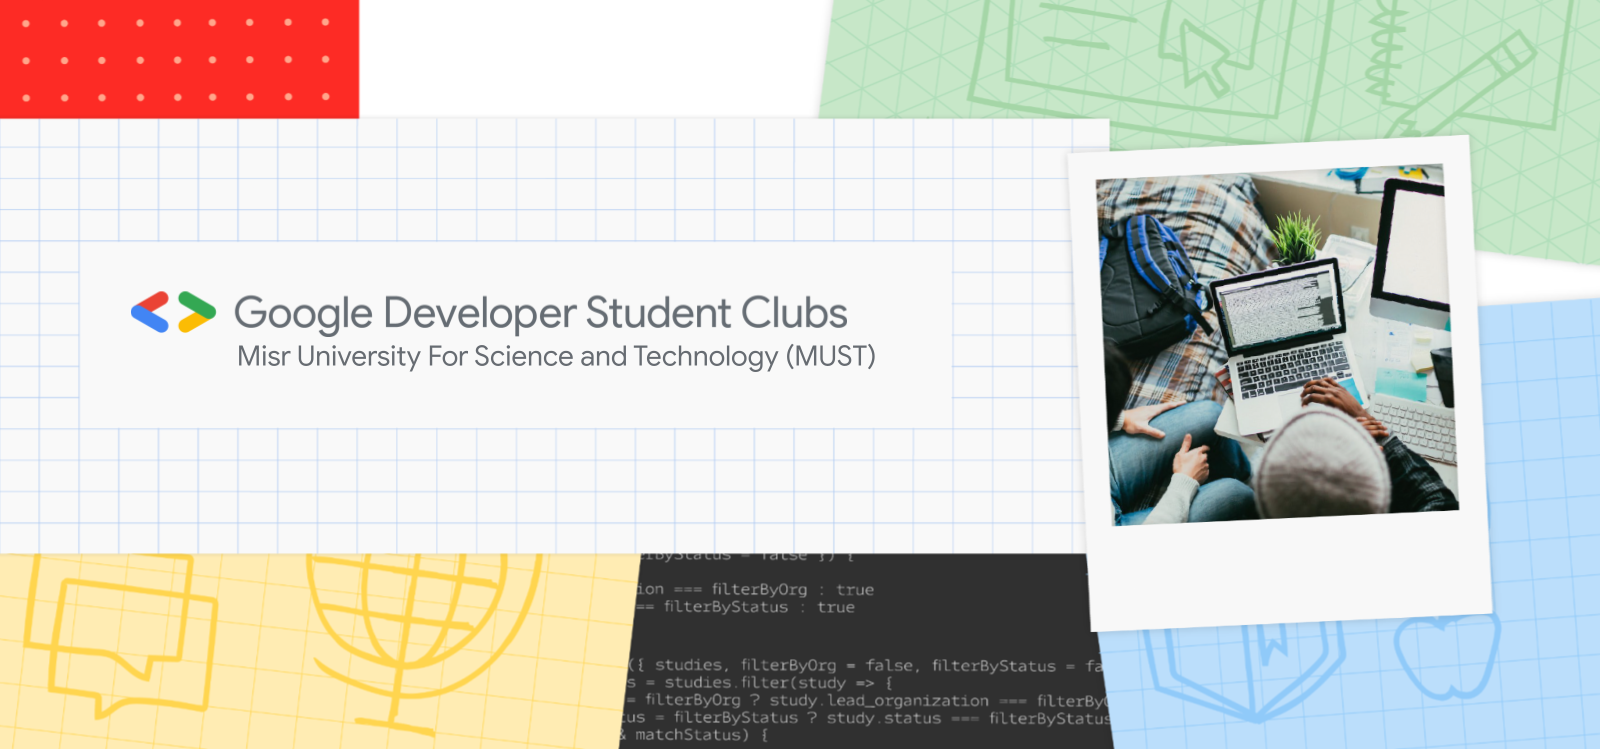 Banner that reads Google Developer Student Clubs, Misr University for Science and Technology (MUST). Includes overhead image of person coding on a laptop